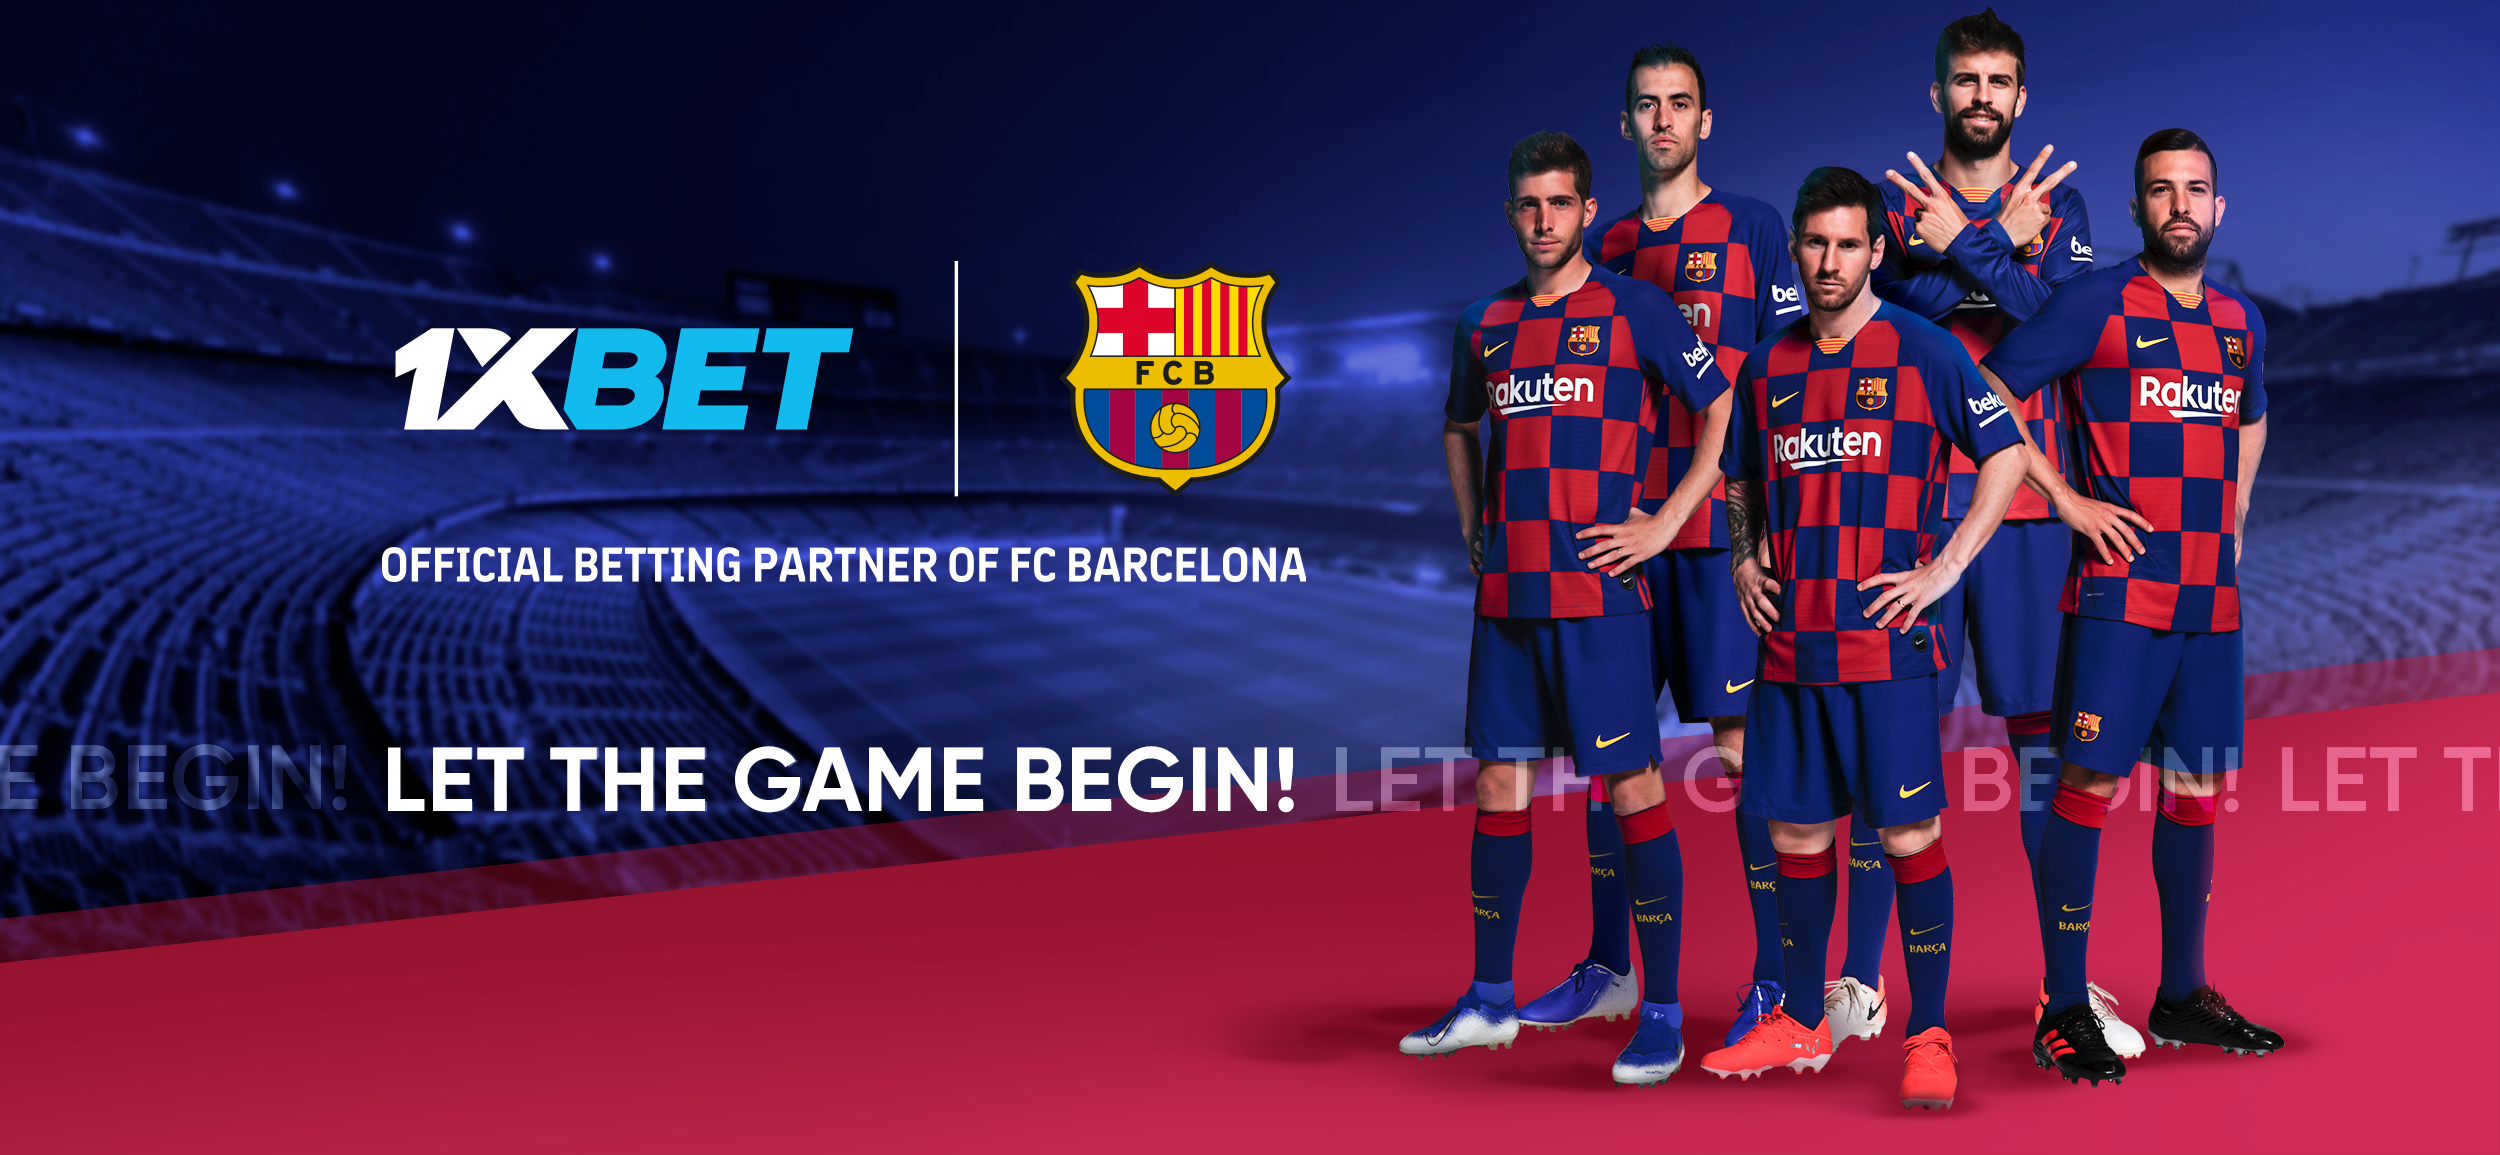 1xBet becomes a global partner of FC Barcelona